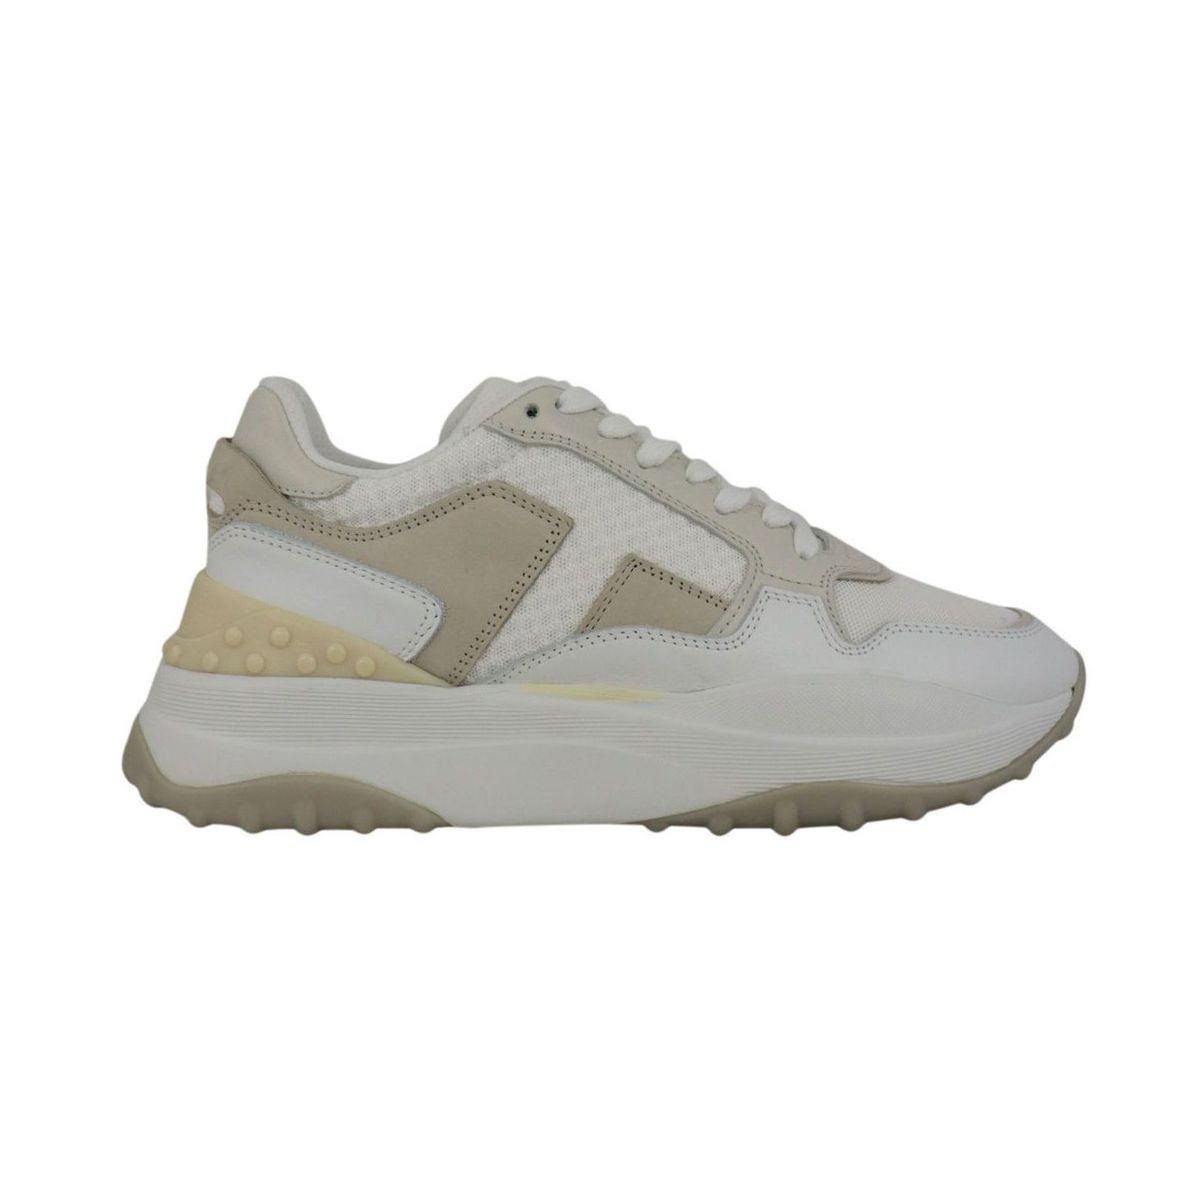 Two-tone sneakers in leather and nylon White / beige Tod's